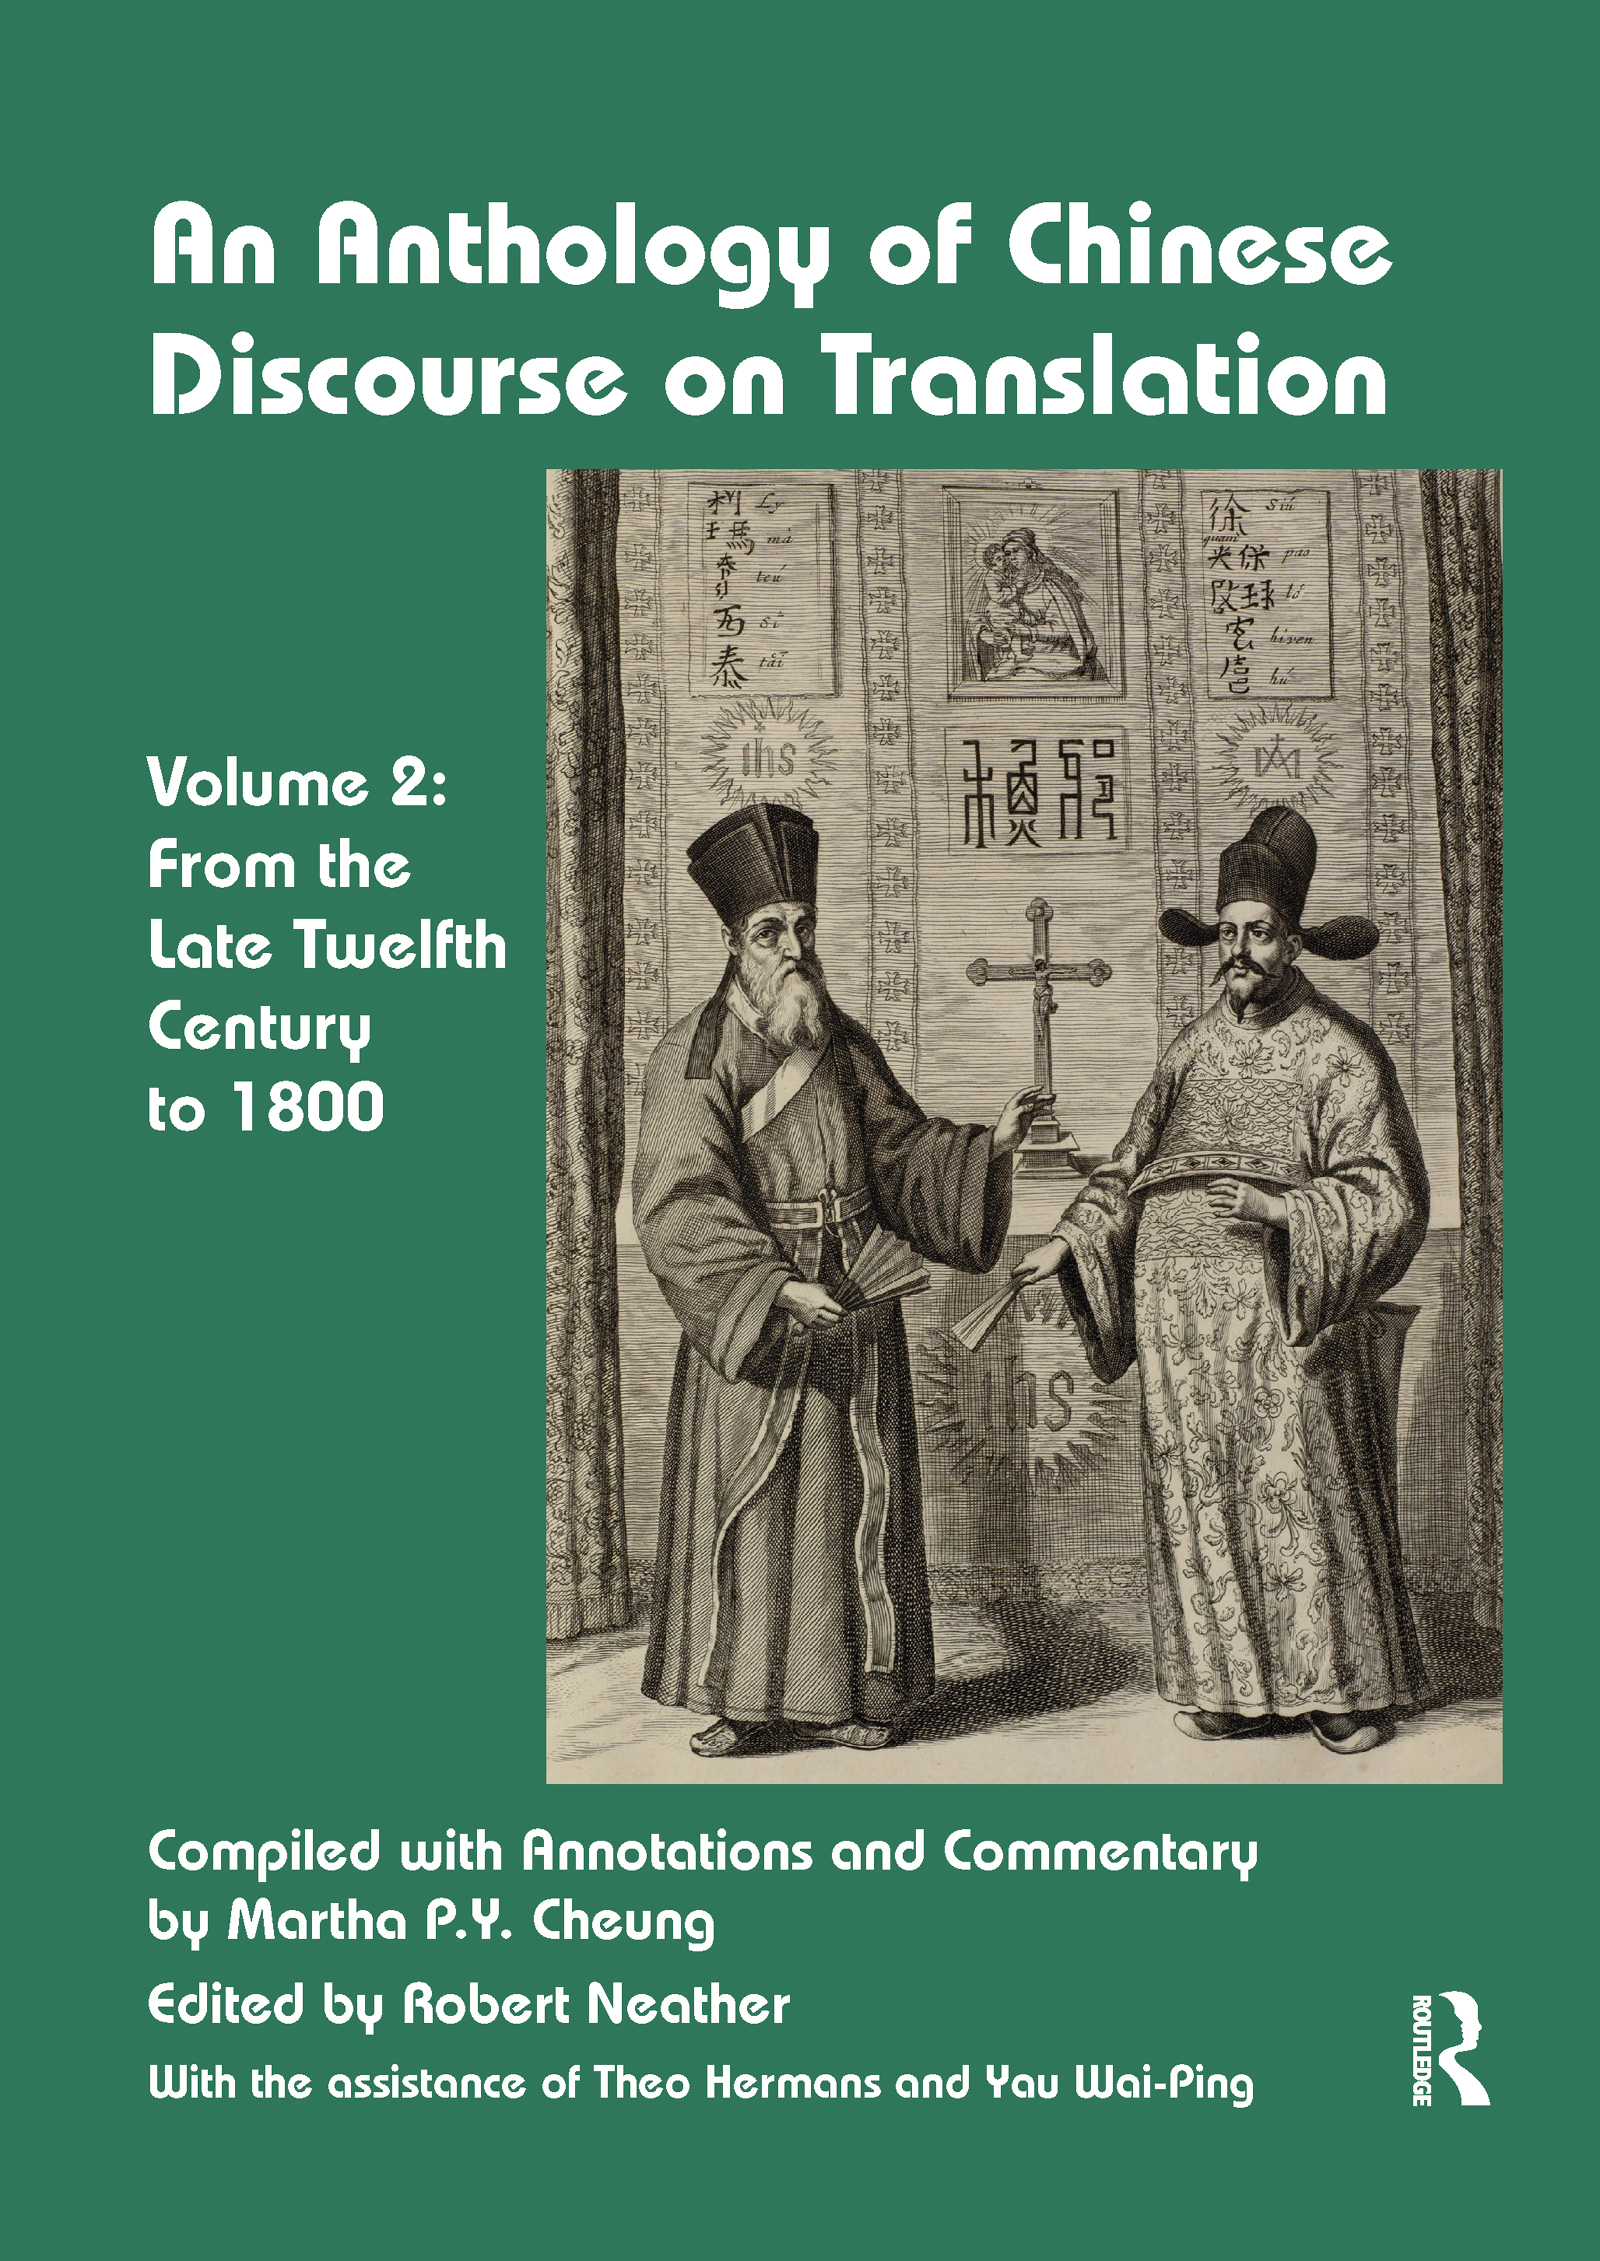 An Anthology of Chinese Discourse on Translation (Volume 2)